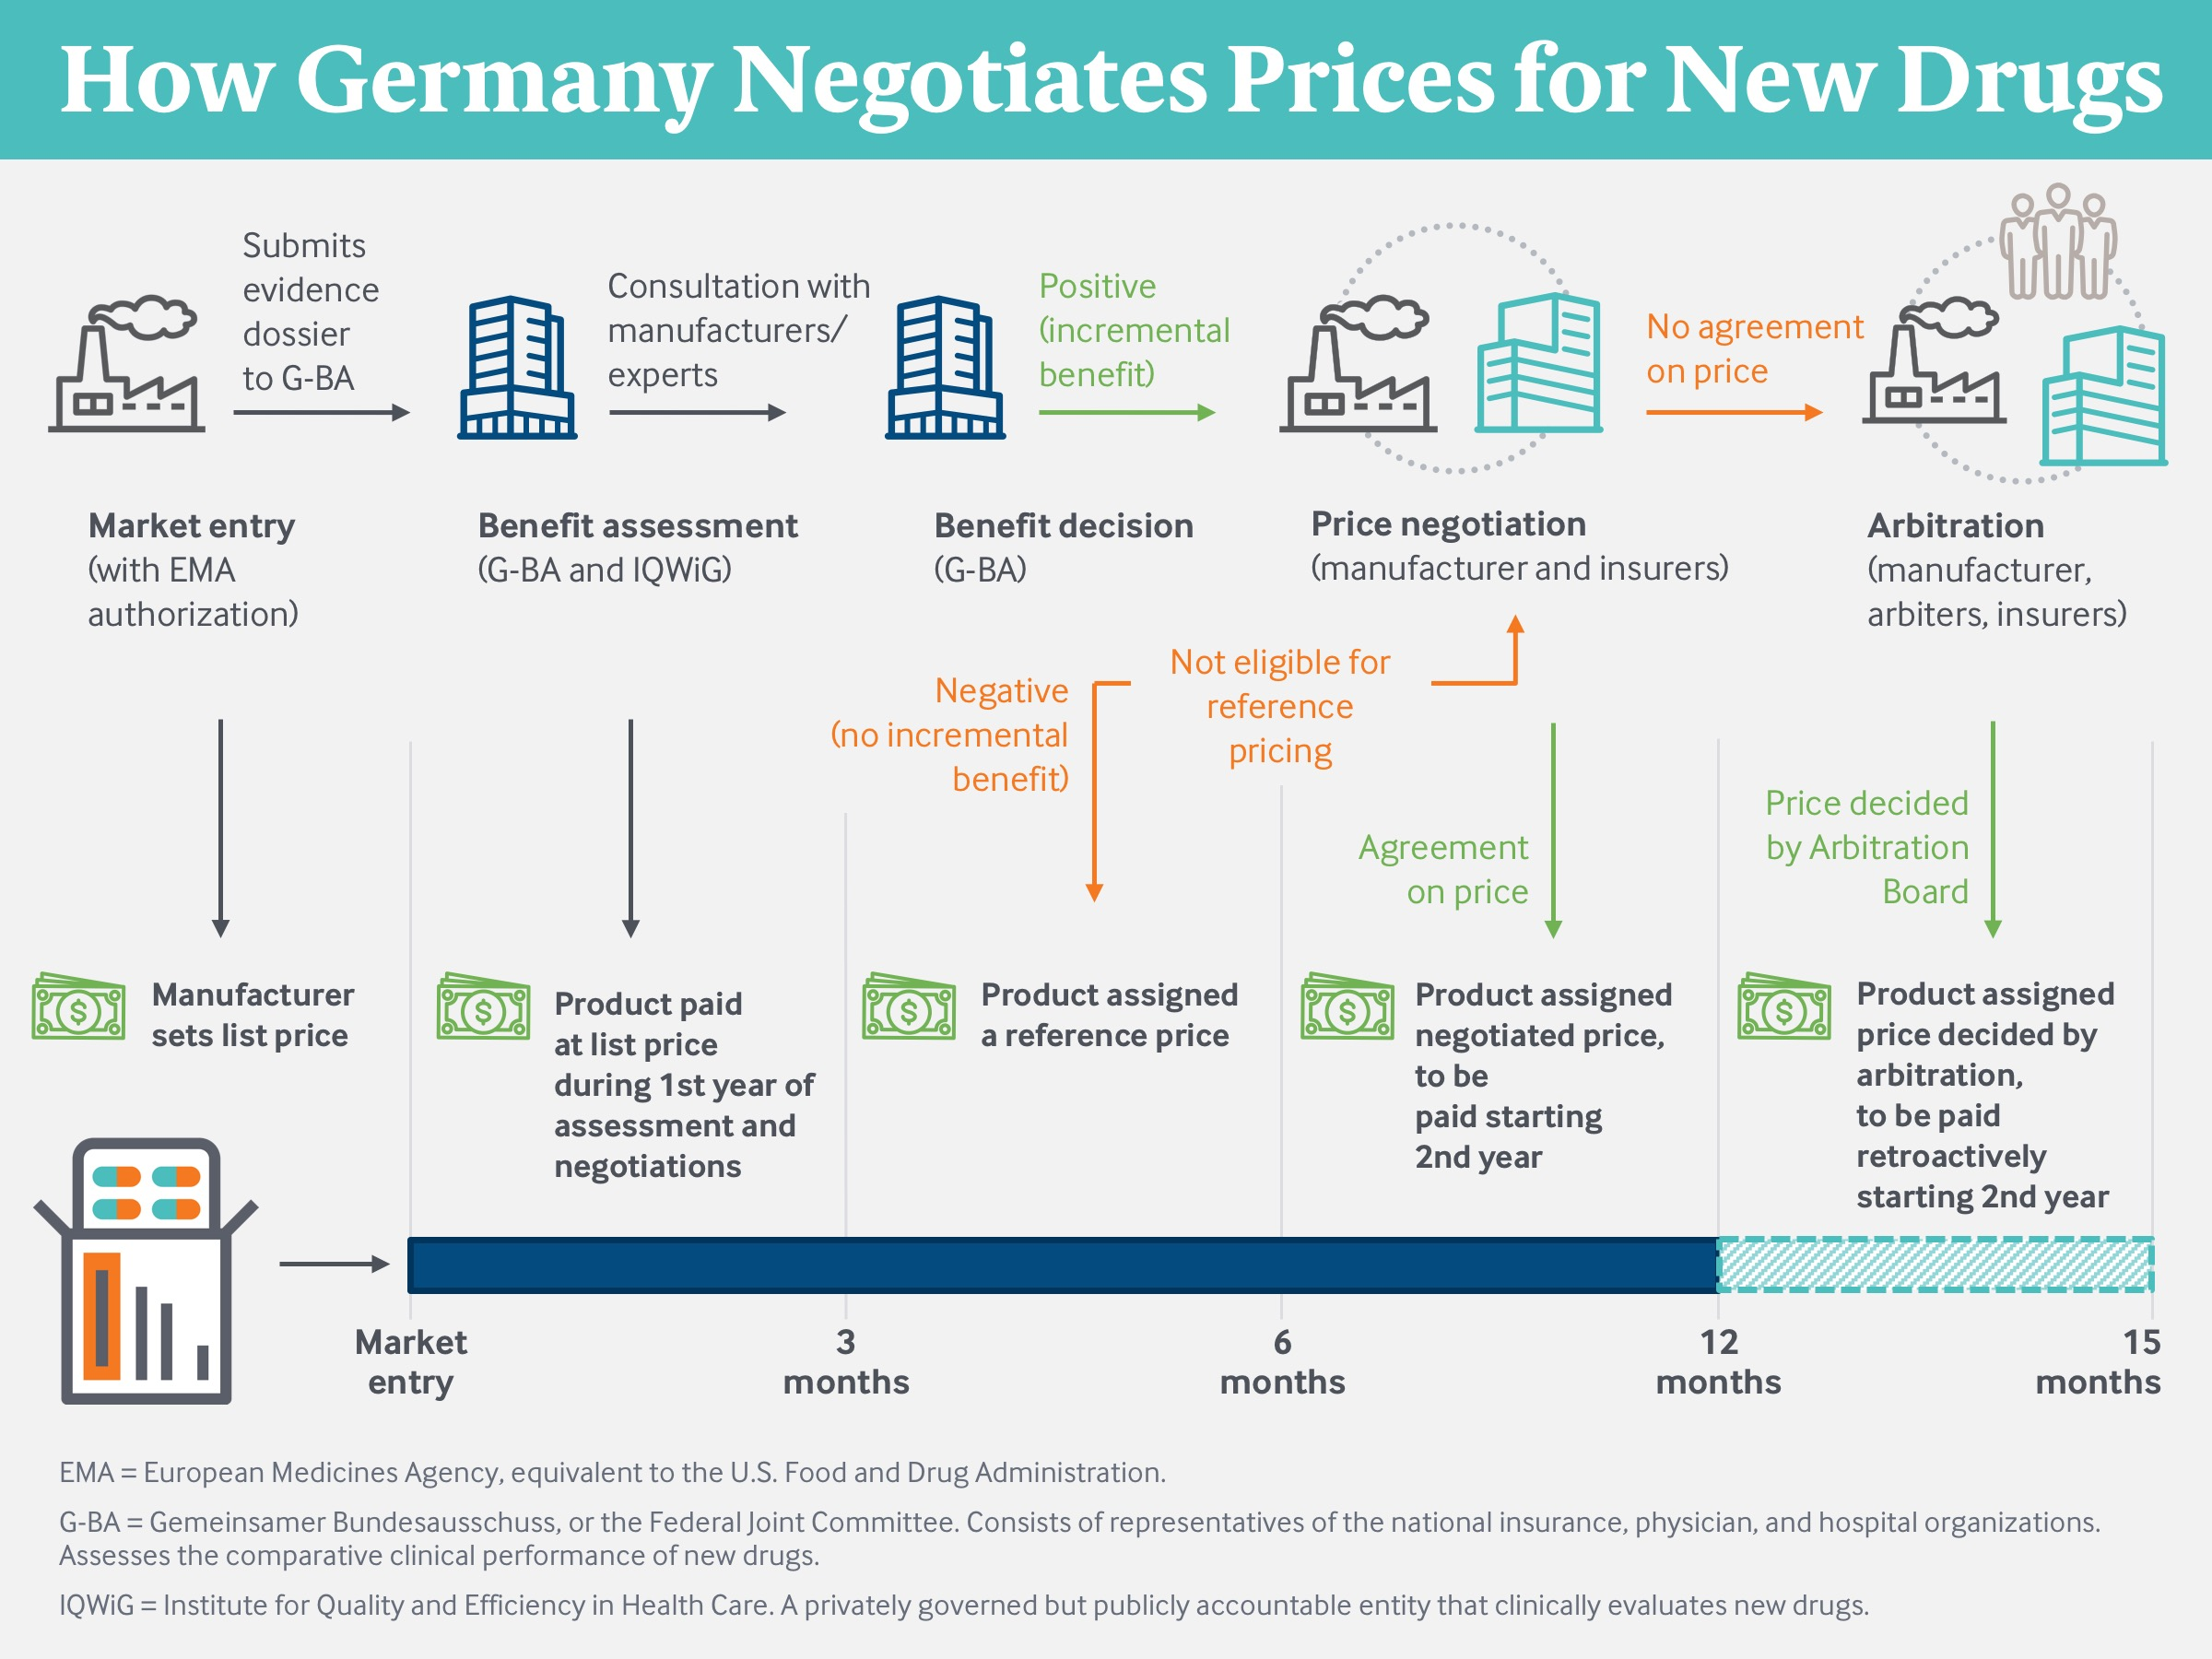 How Germany Negotiates Prices for New Drugs